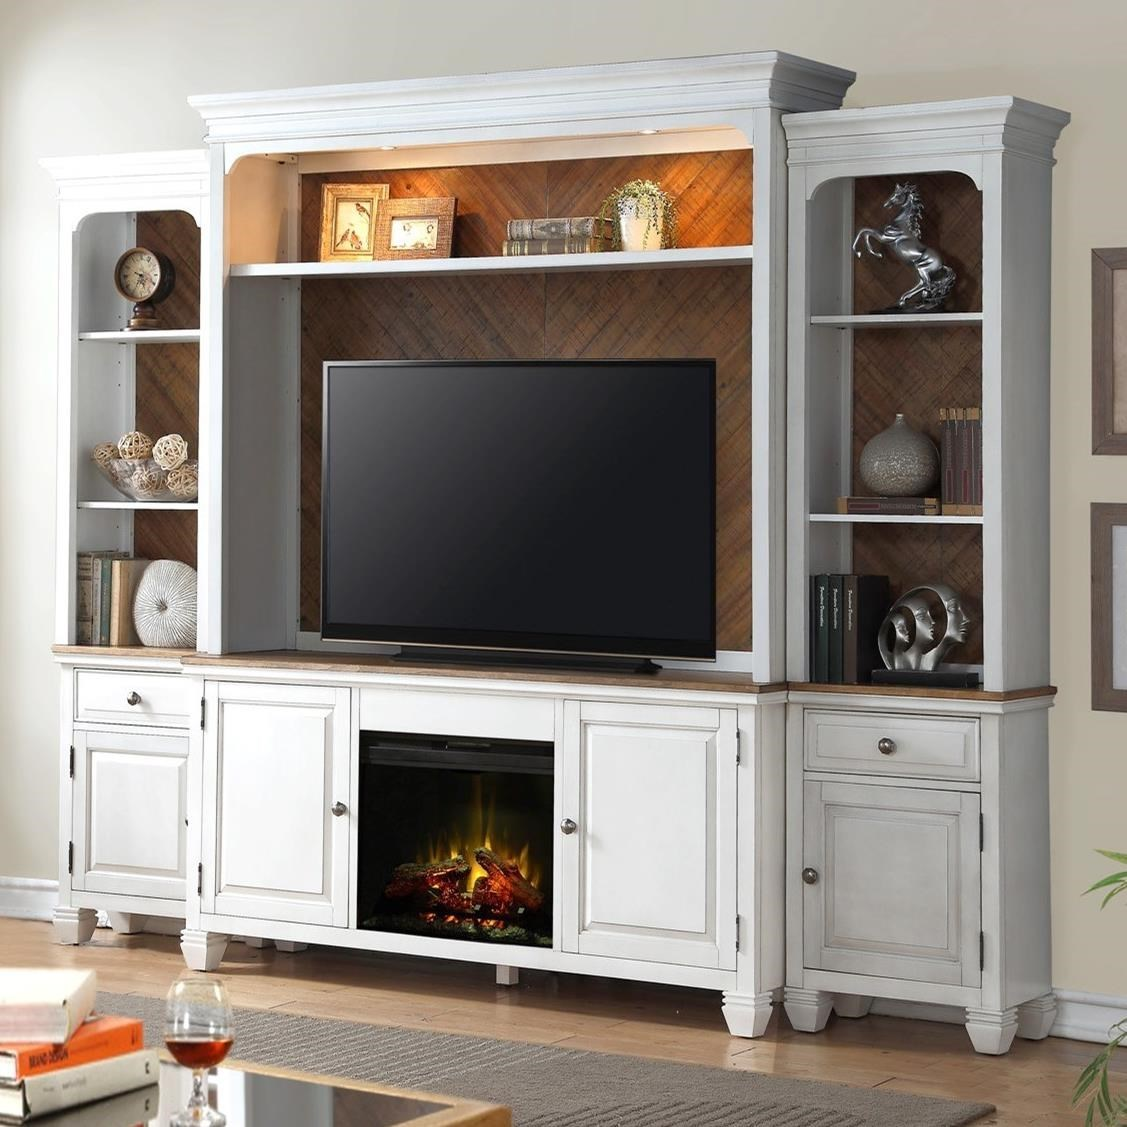 Fireplace Wall Units Vendor 1356 Camden Collection Zcmd 1001 Fireplace Entertainment